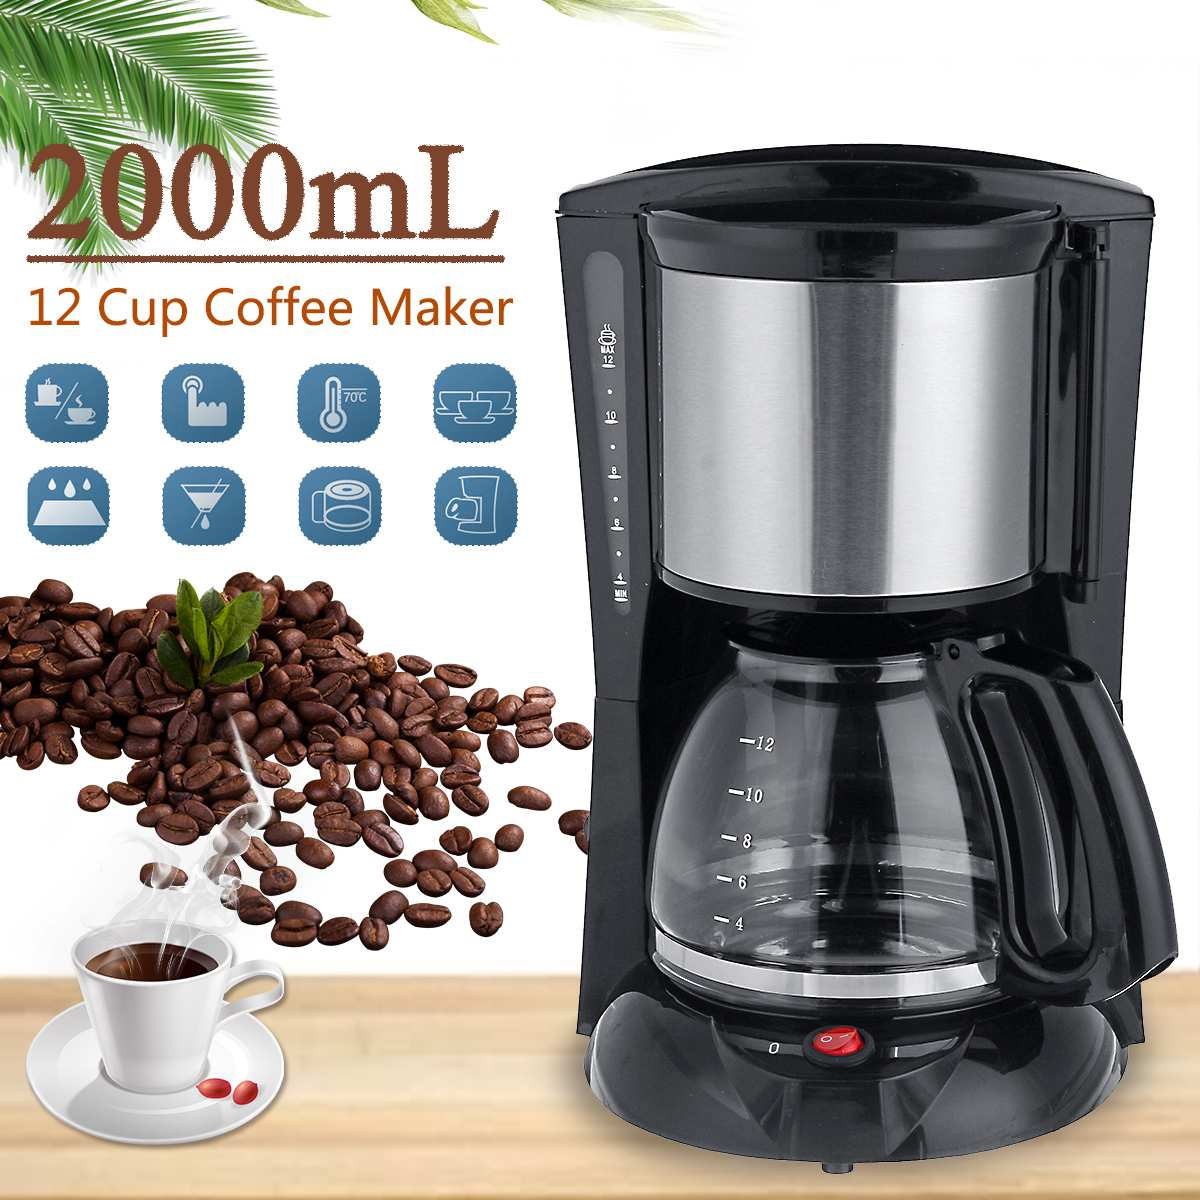 Becornce 1.8-2L Household Office American Style Drip Tea/Coffee Making Machine 12 Cups Coffee Maker 900W Temperature Control